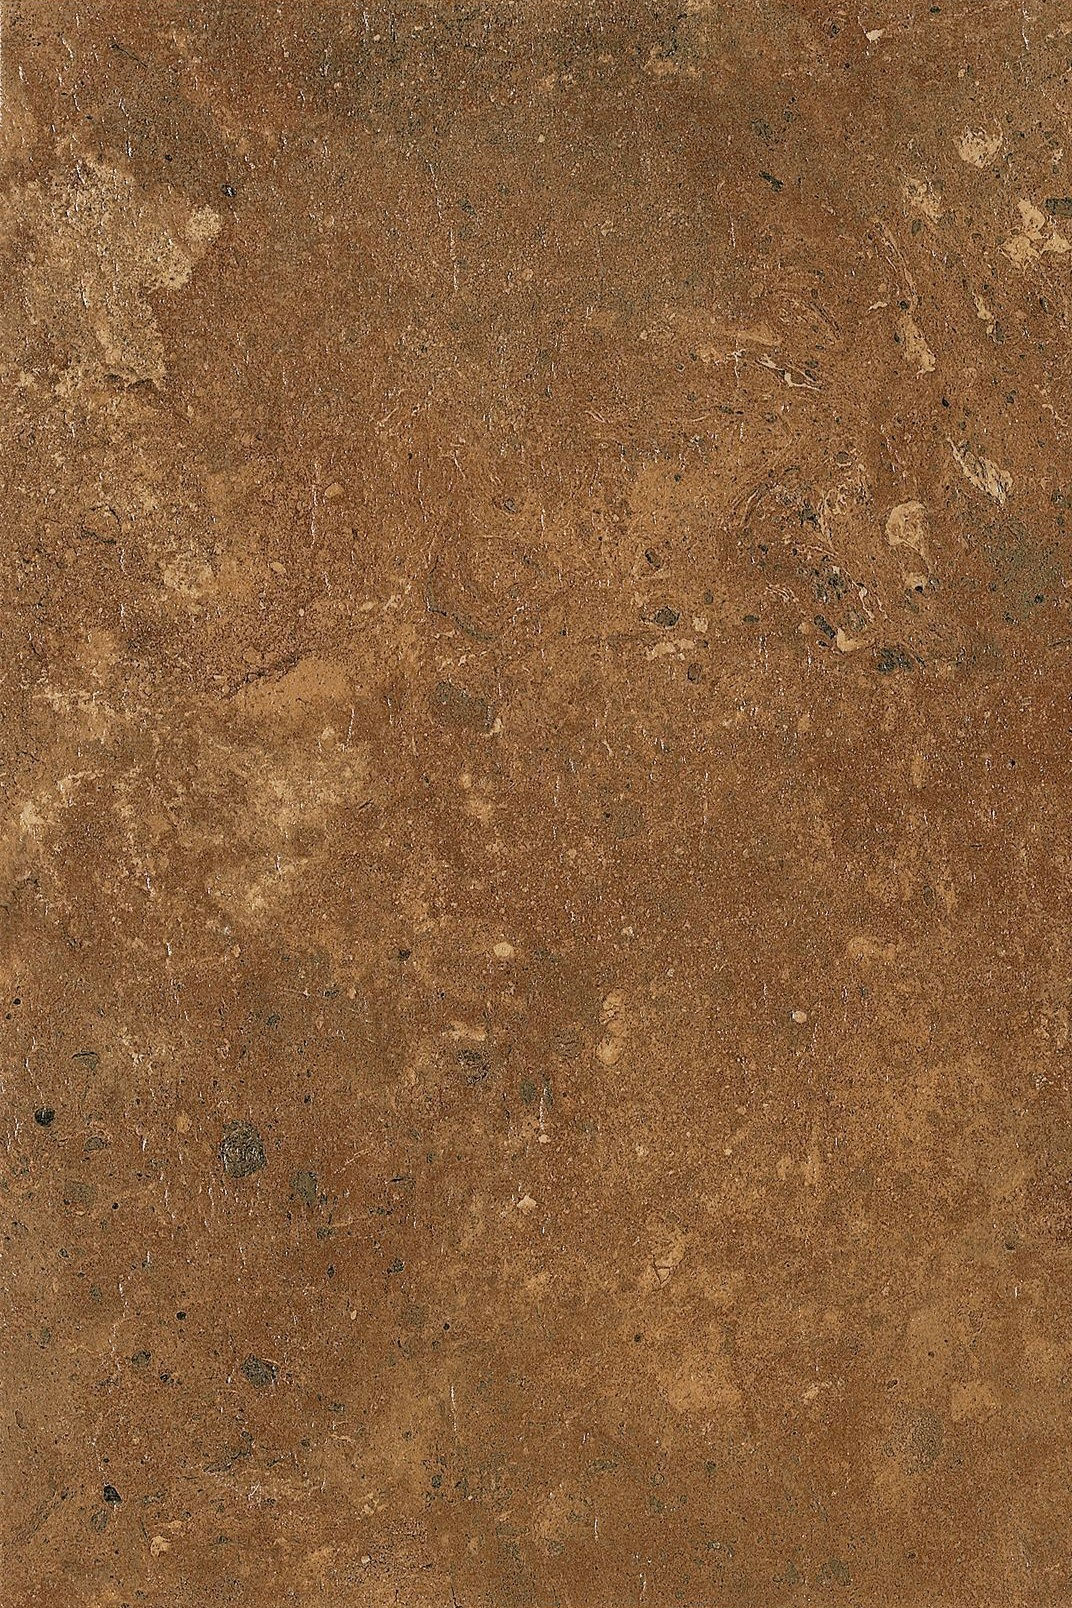 Armstrong Alterna Aztec Trail Terracotta 16 X 16 Luxury